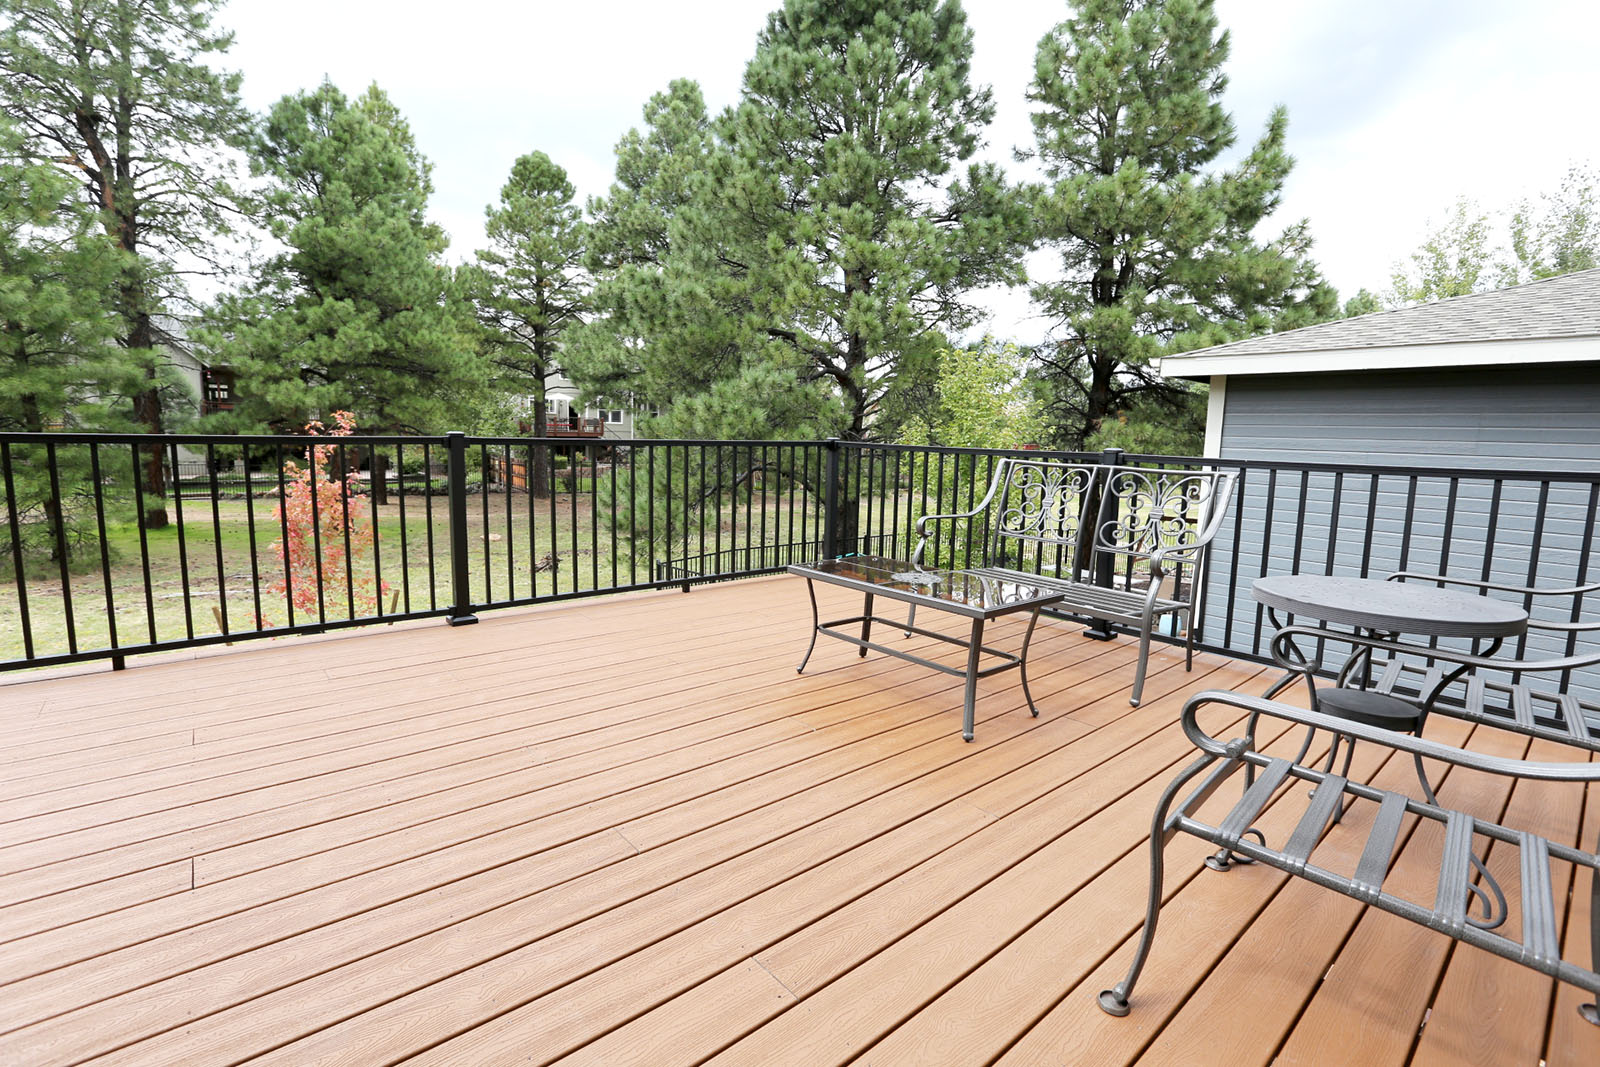 Trex Reveal Railings in Black on a Trex Transcends deck